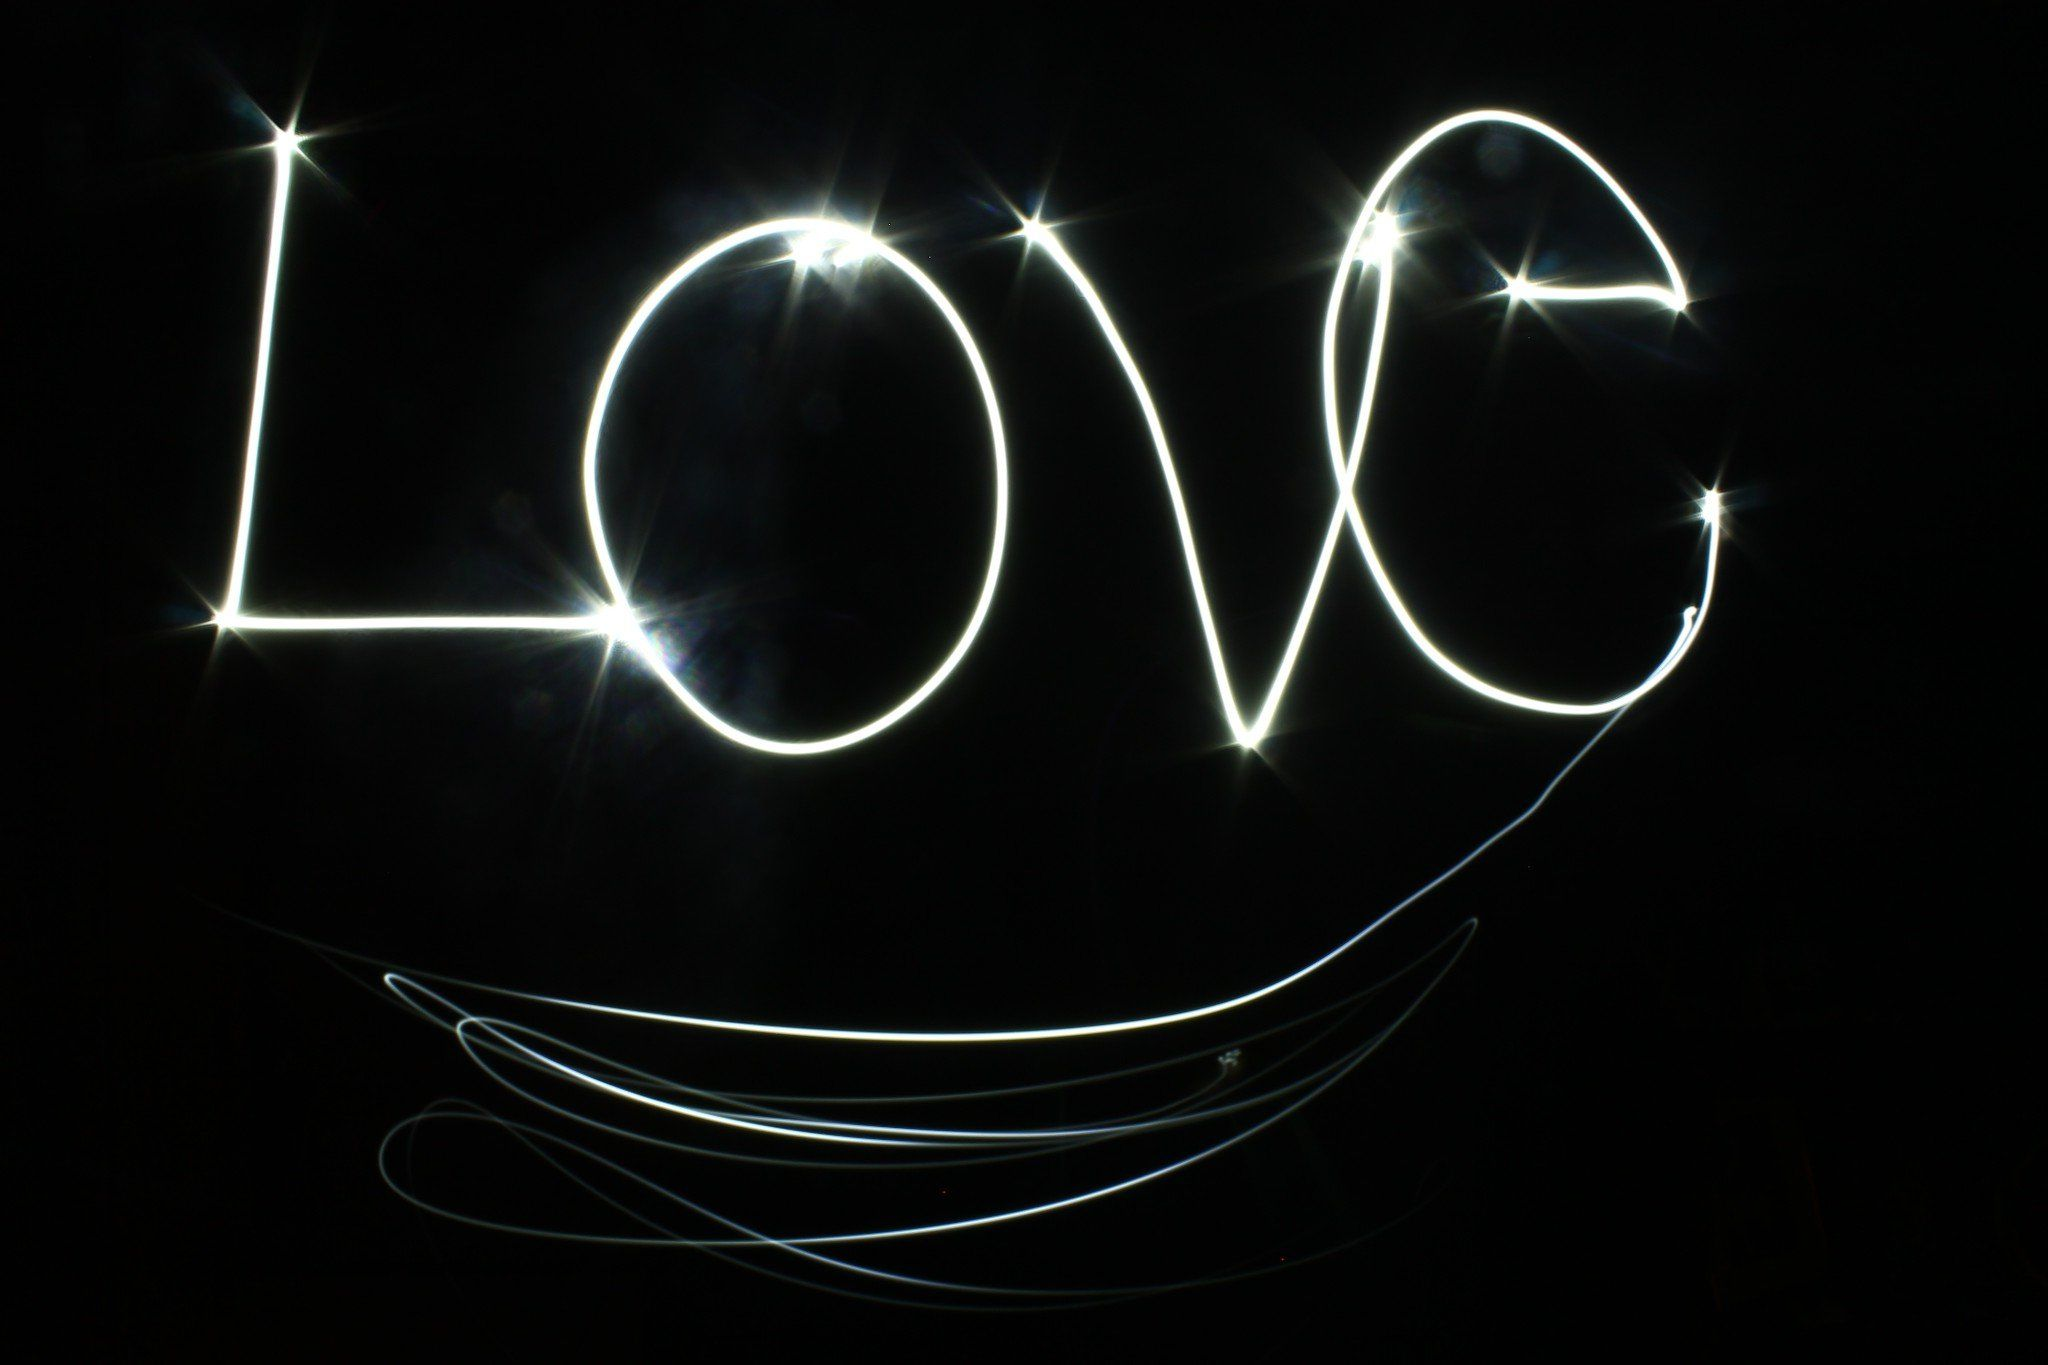 Painting with light. Now that I know how to do this.. new